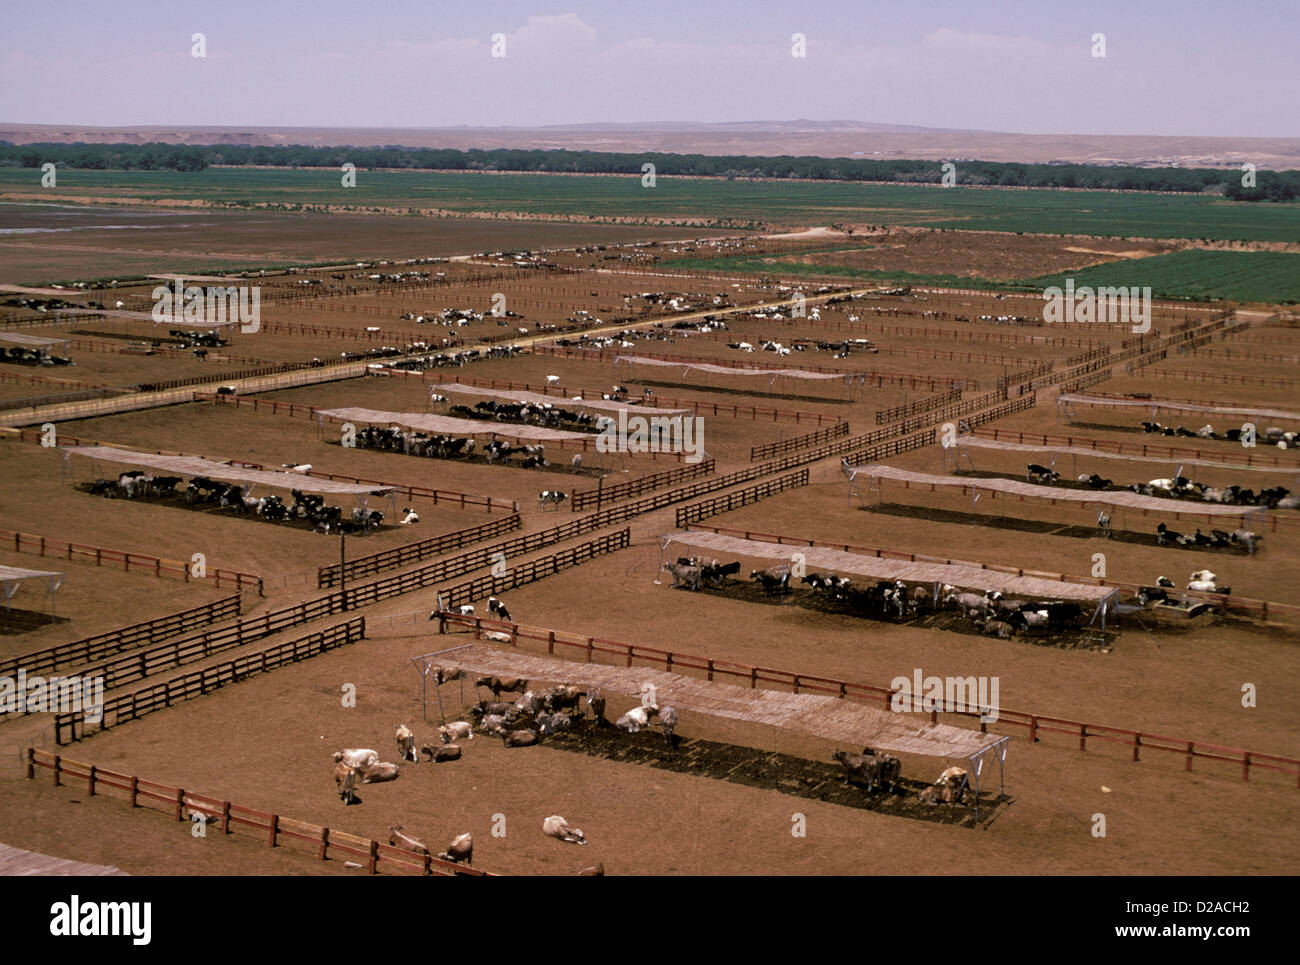 New Mexico Albuquerque Overview Of Dairy Cows At Dairy Farm Stock Photo Alamy